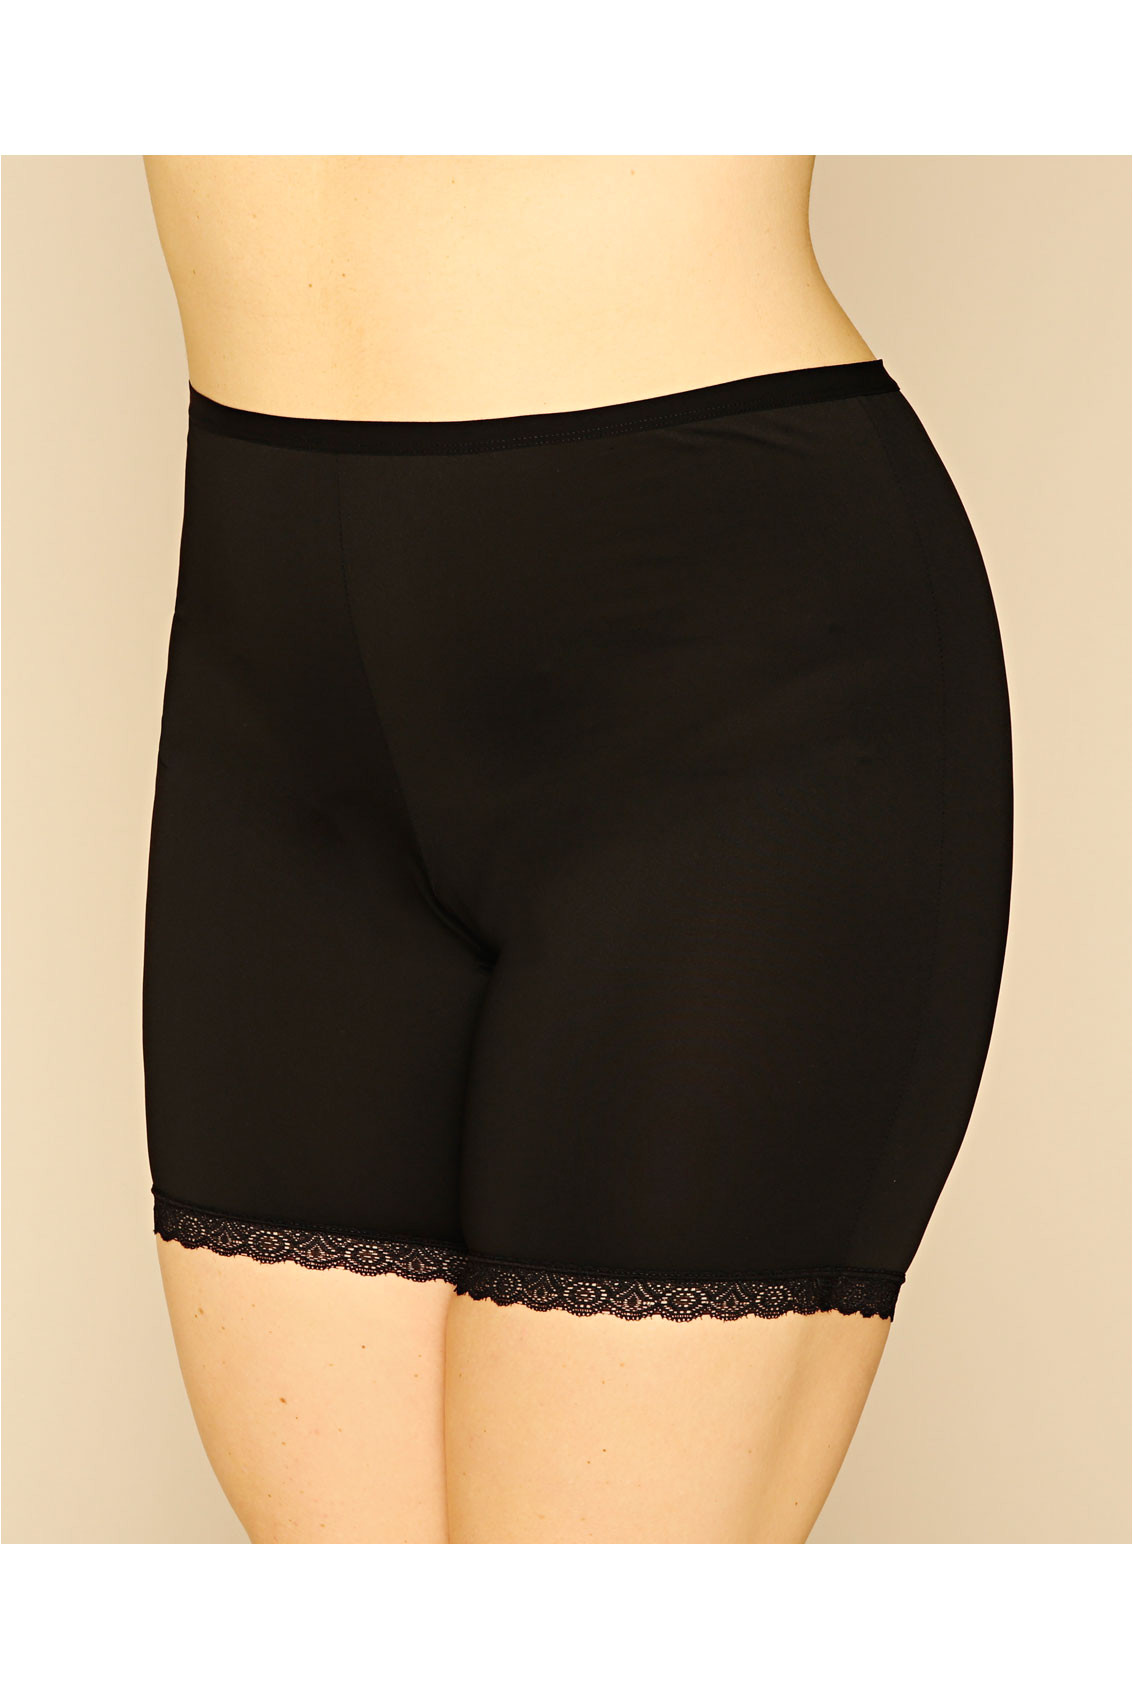 black thigh smoother brief with lace detail hem p